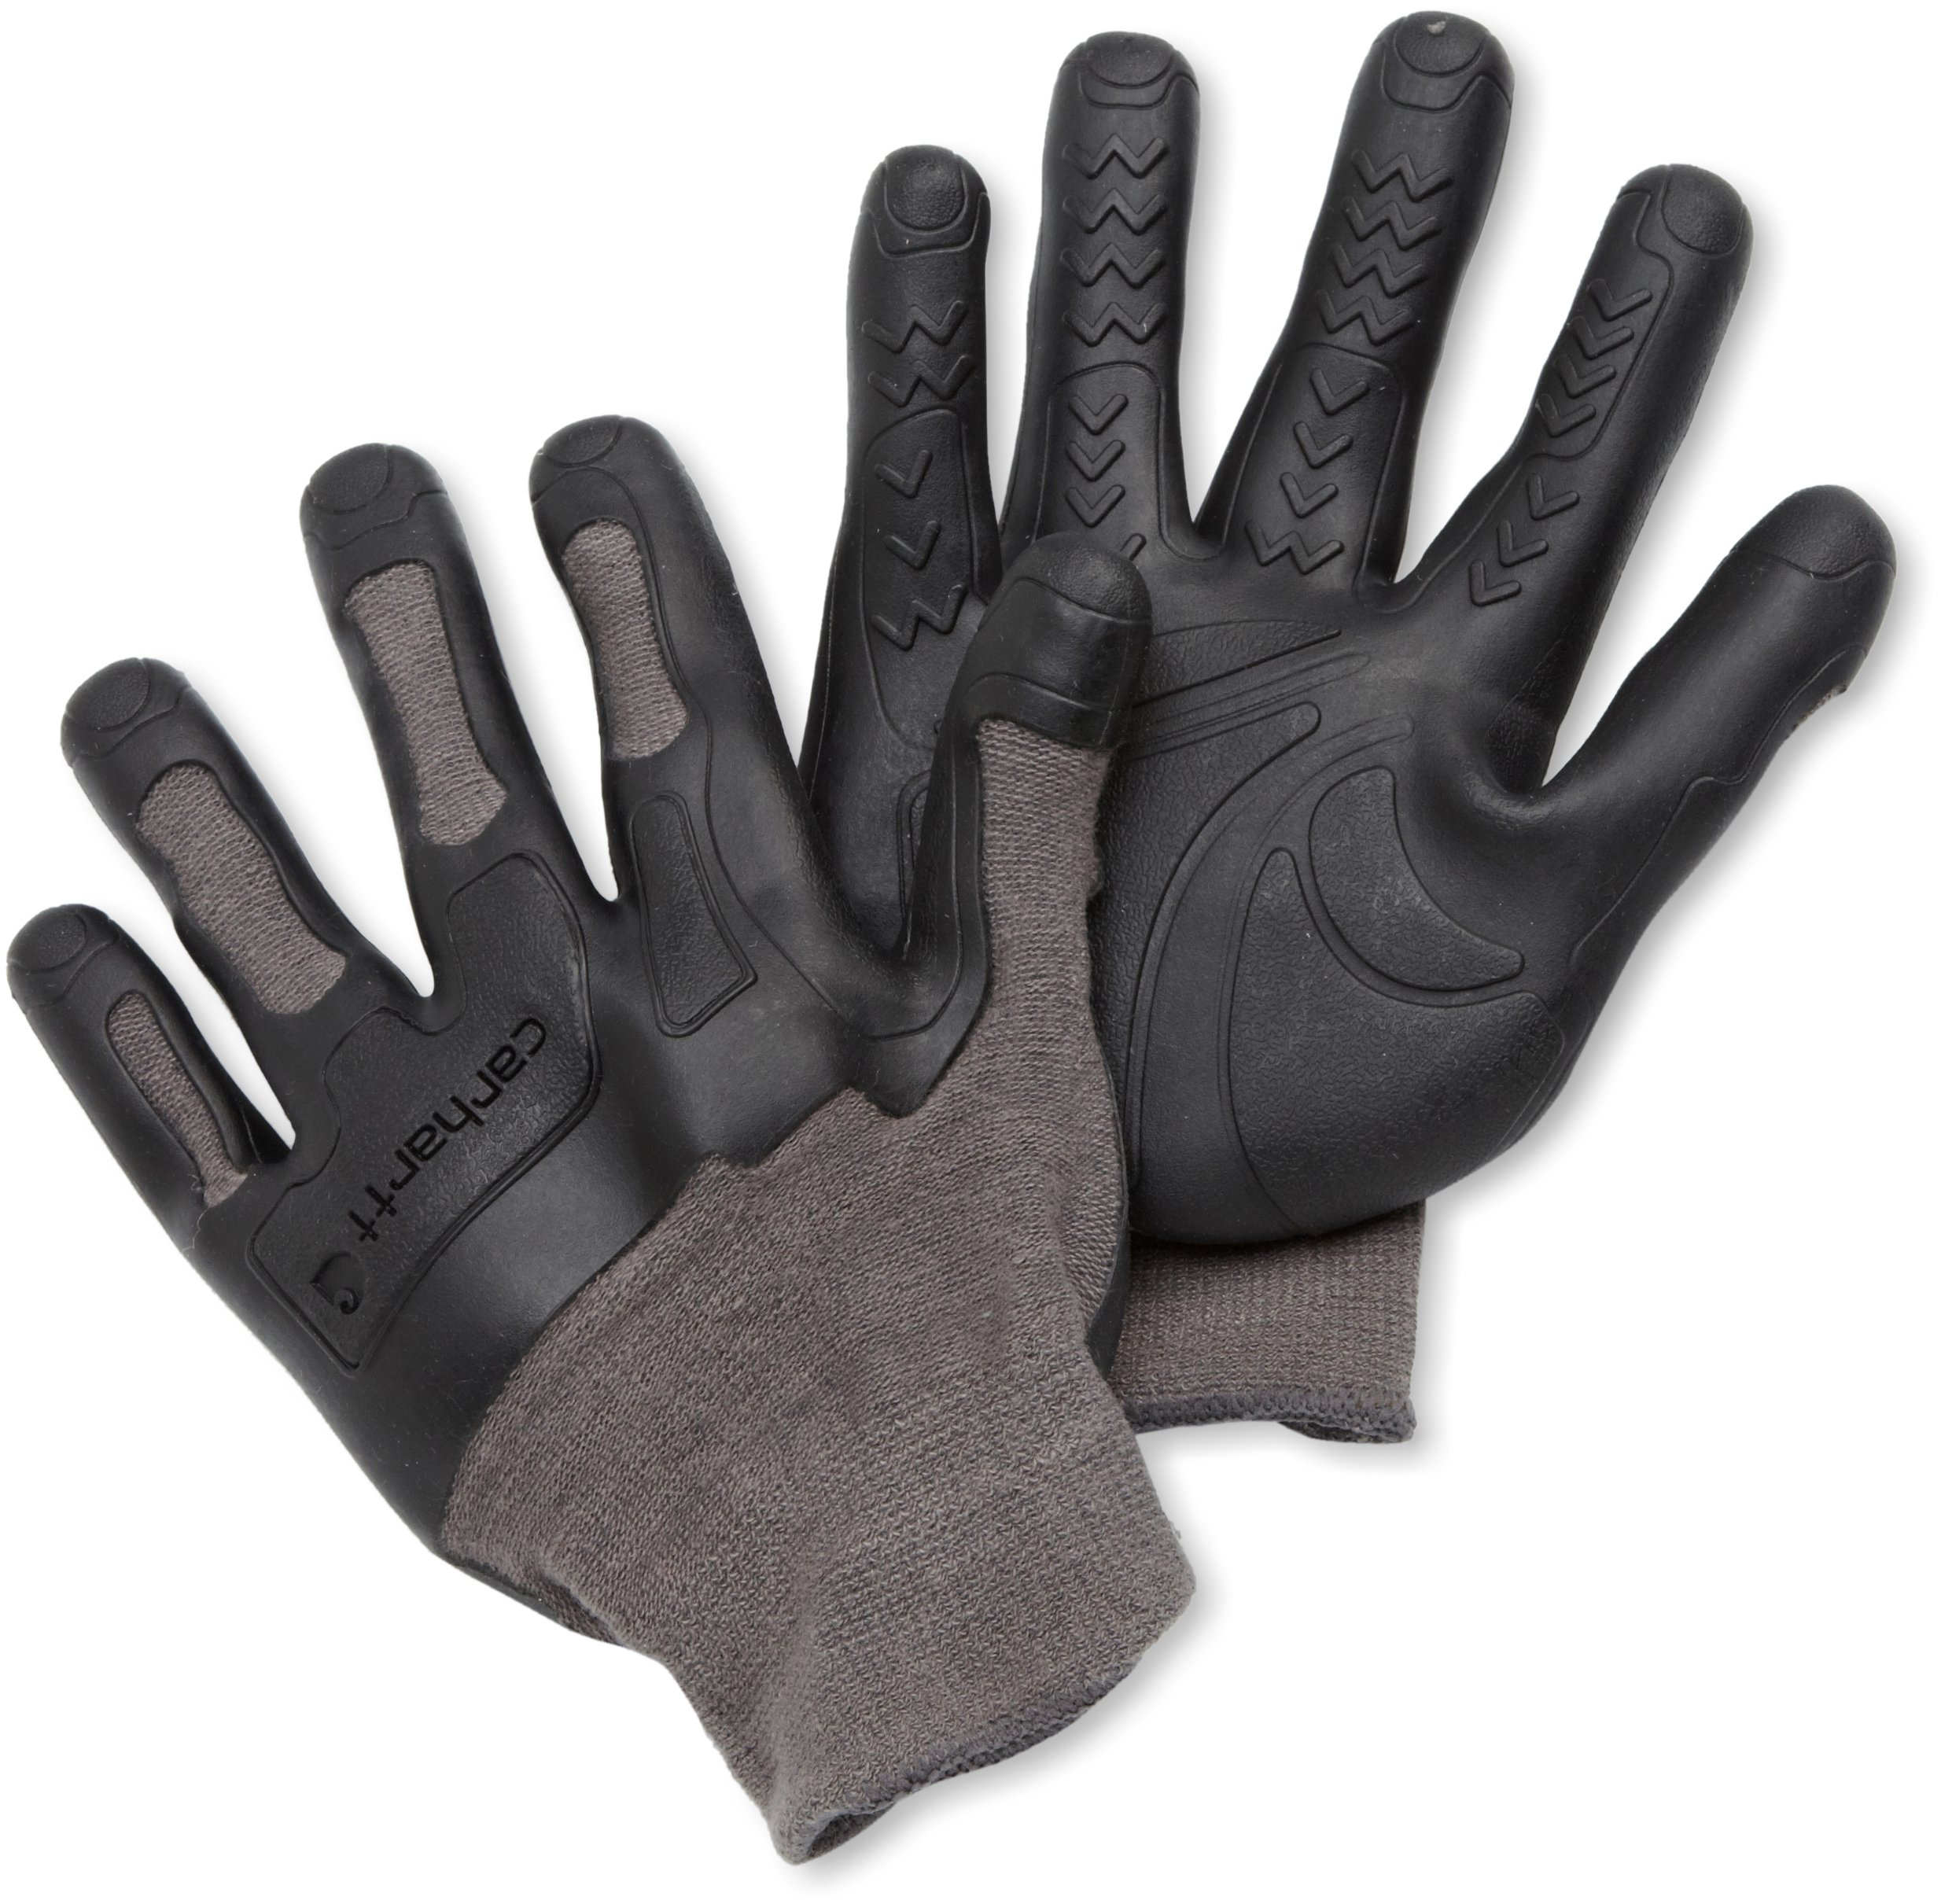 Carhartt Men's Ergo Knuckler Glove, Grey, Large/X-Large